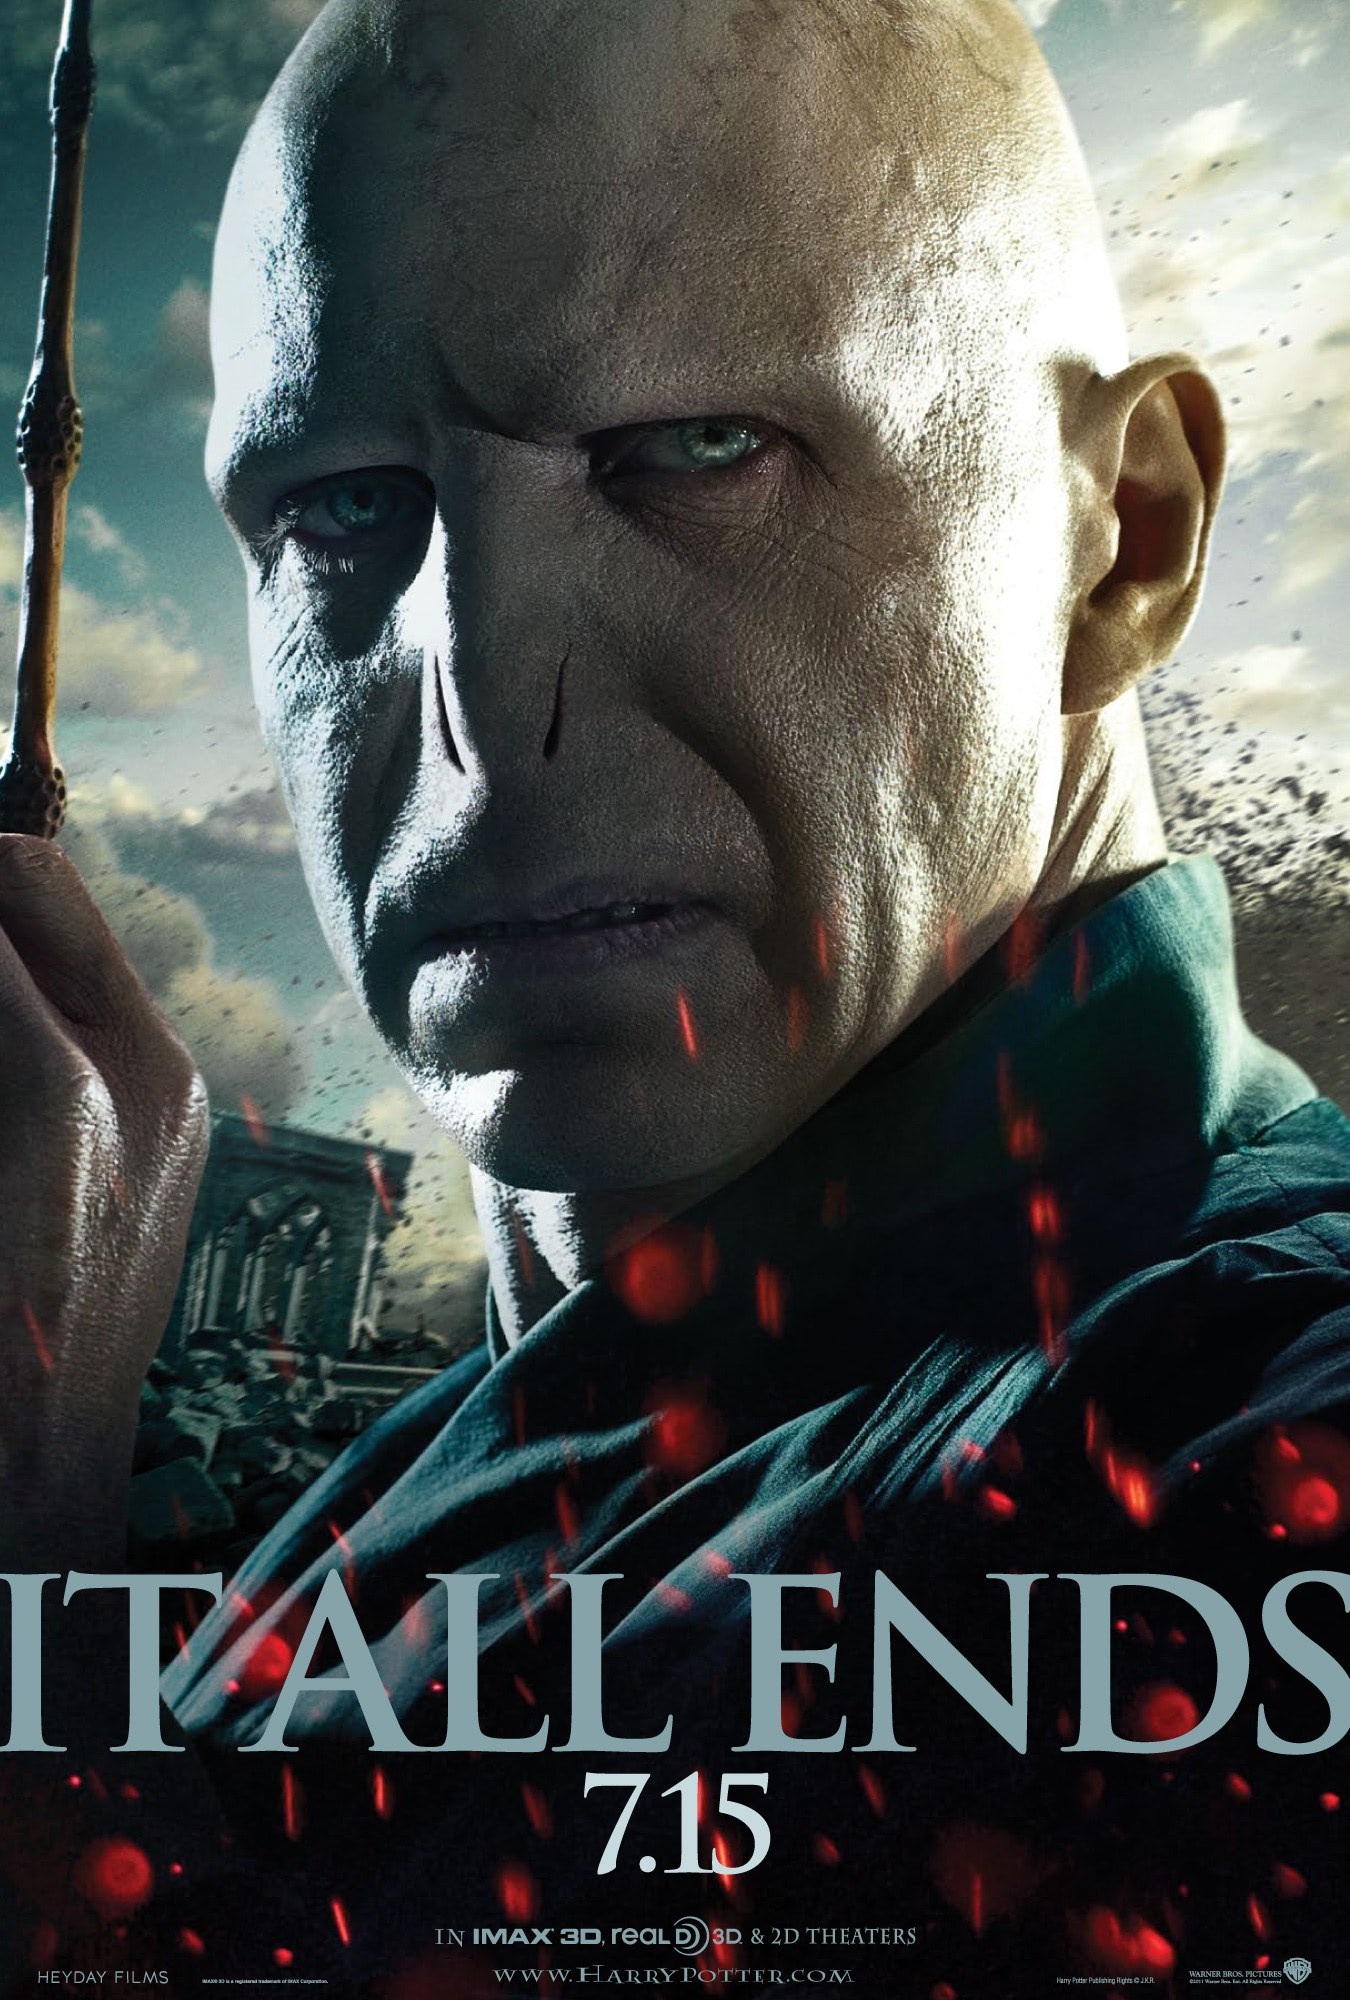 'Deathly Hallows: Part 2' Voldemort poster #3